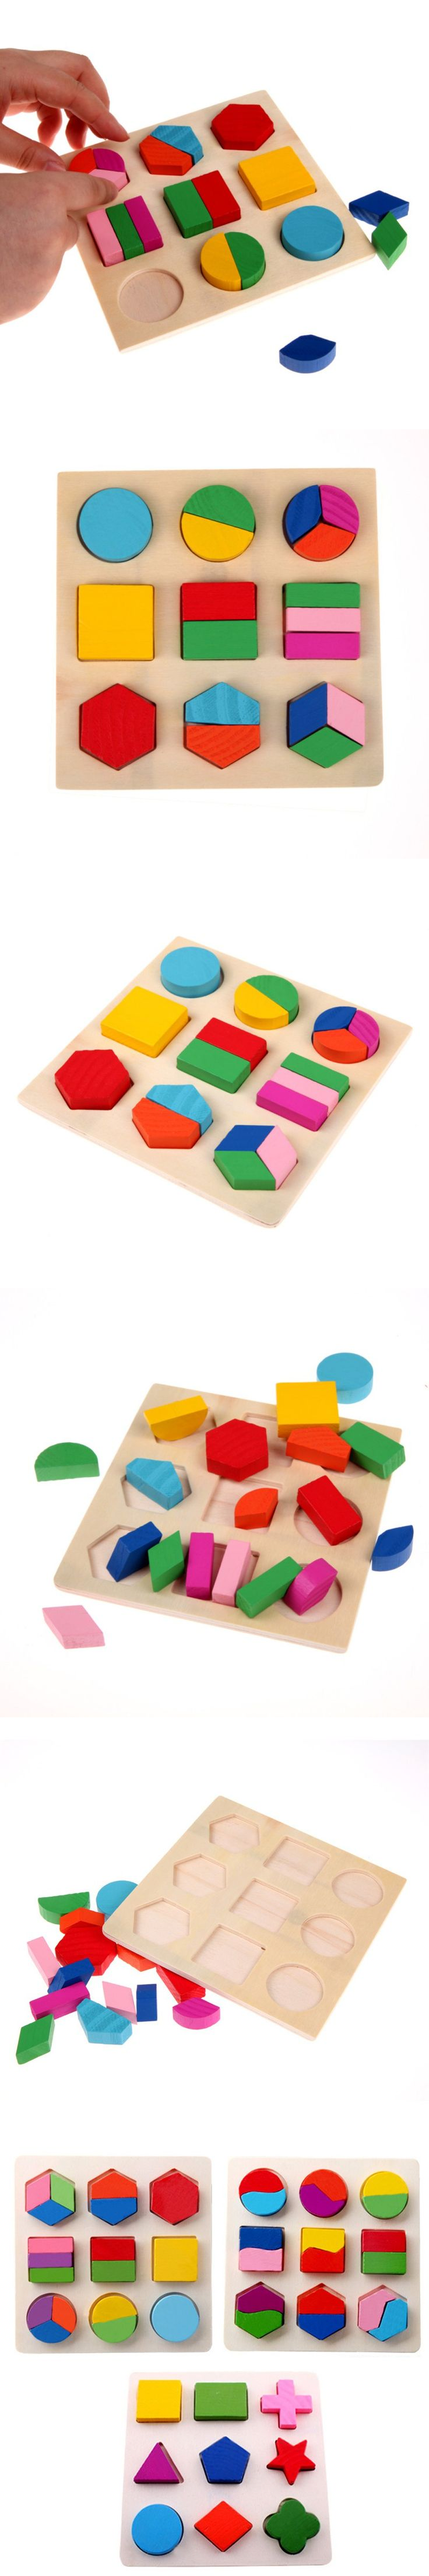 The 25 best Wooden educational toys ideas on Pinterest